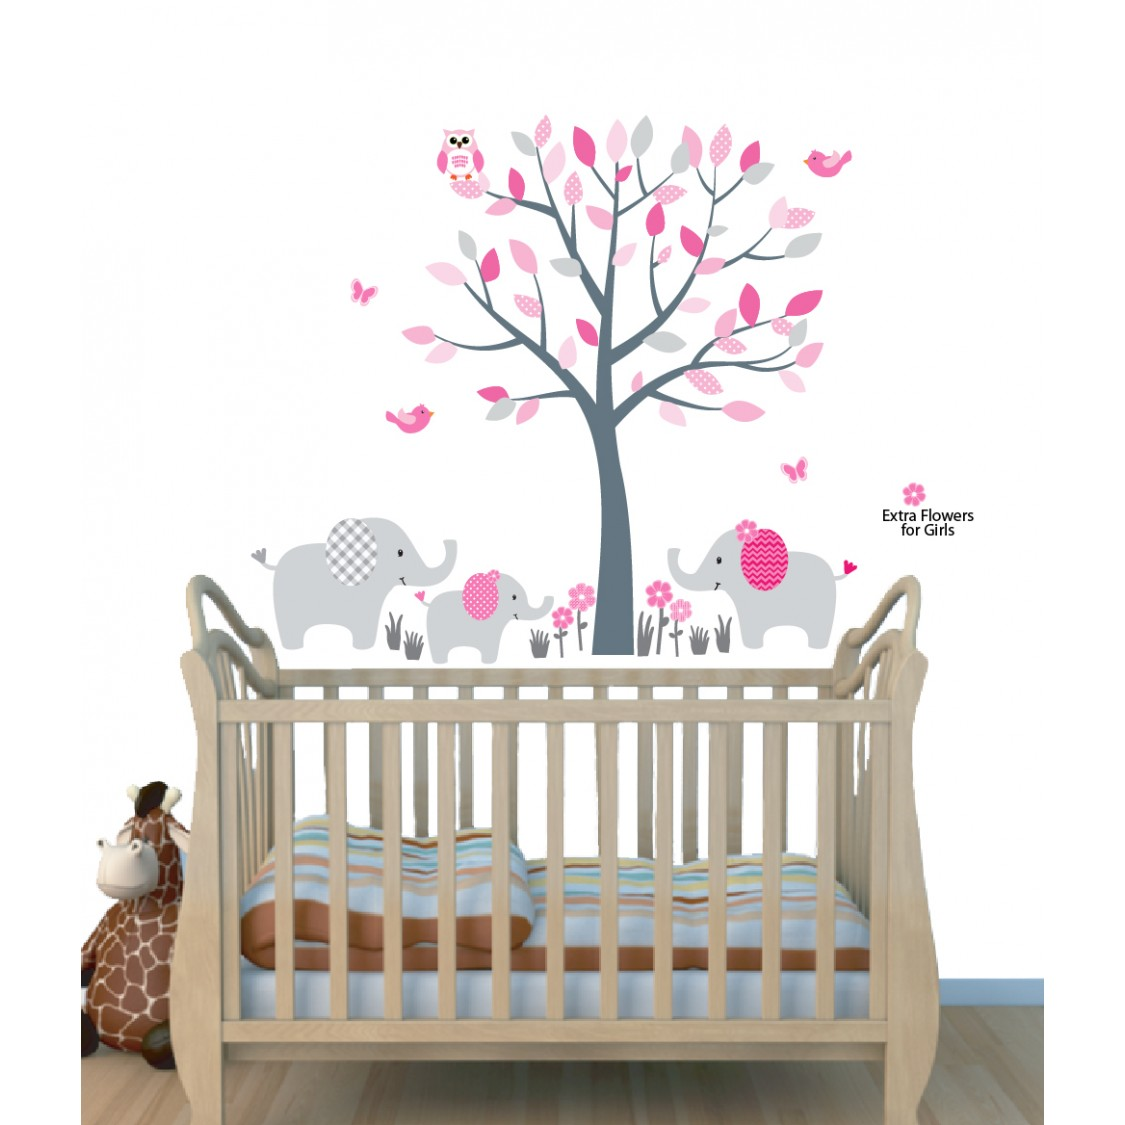 Elegant Pink Nursery Jungle Wall Decals With Elephant Wall Art For Kids